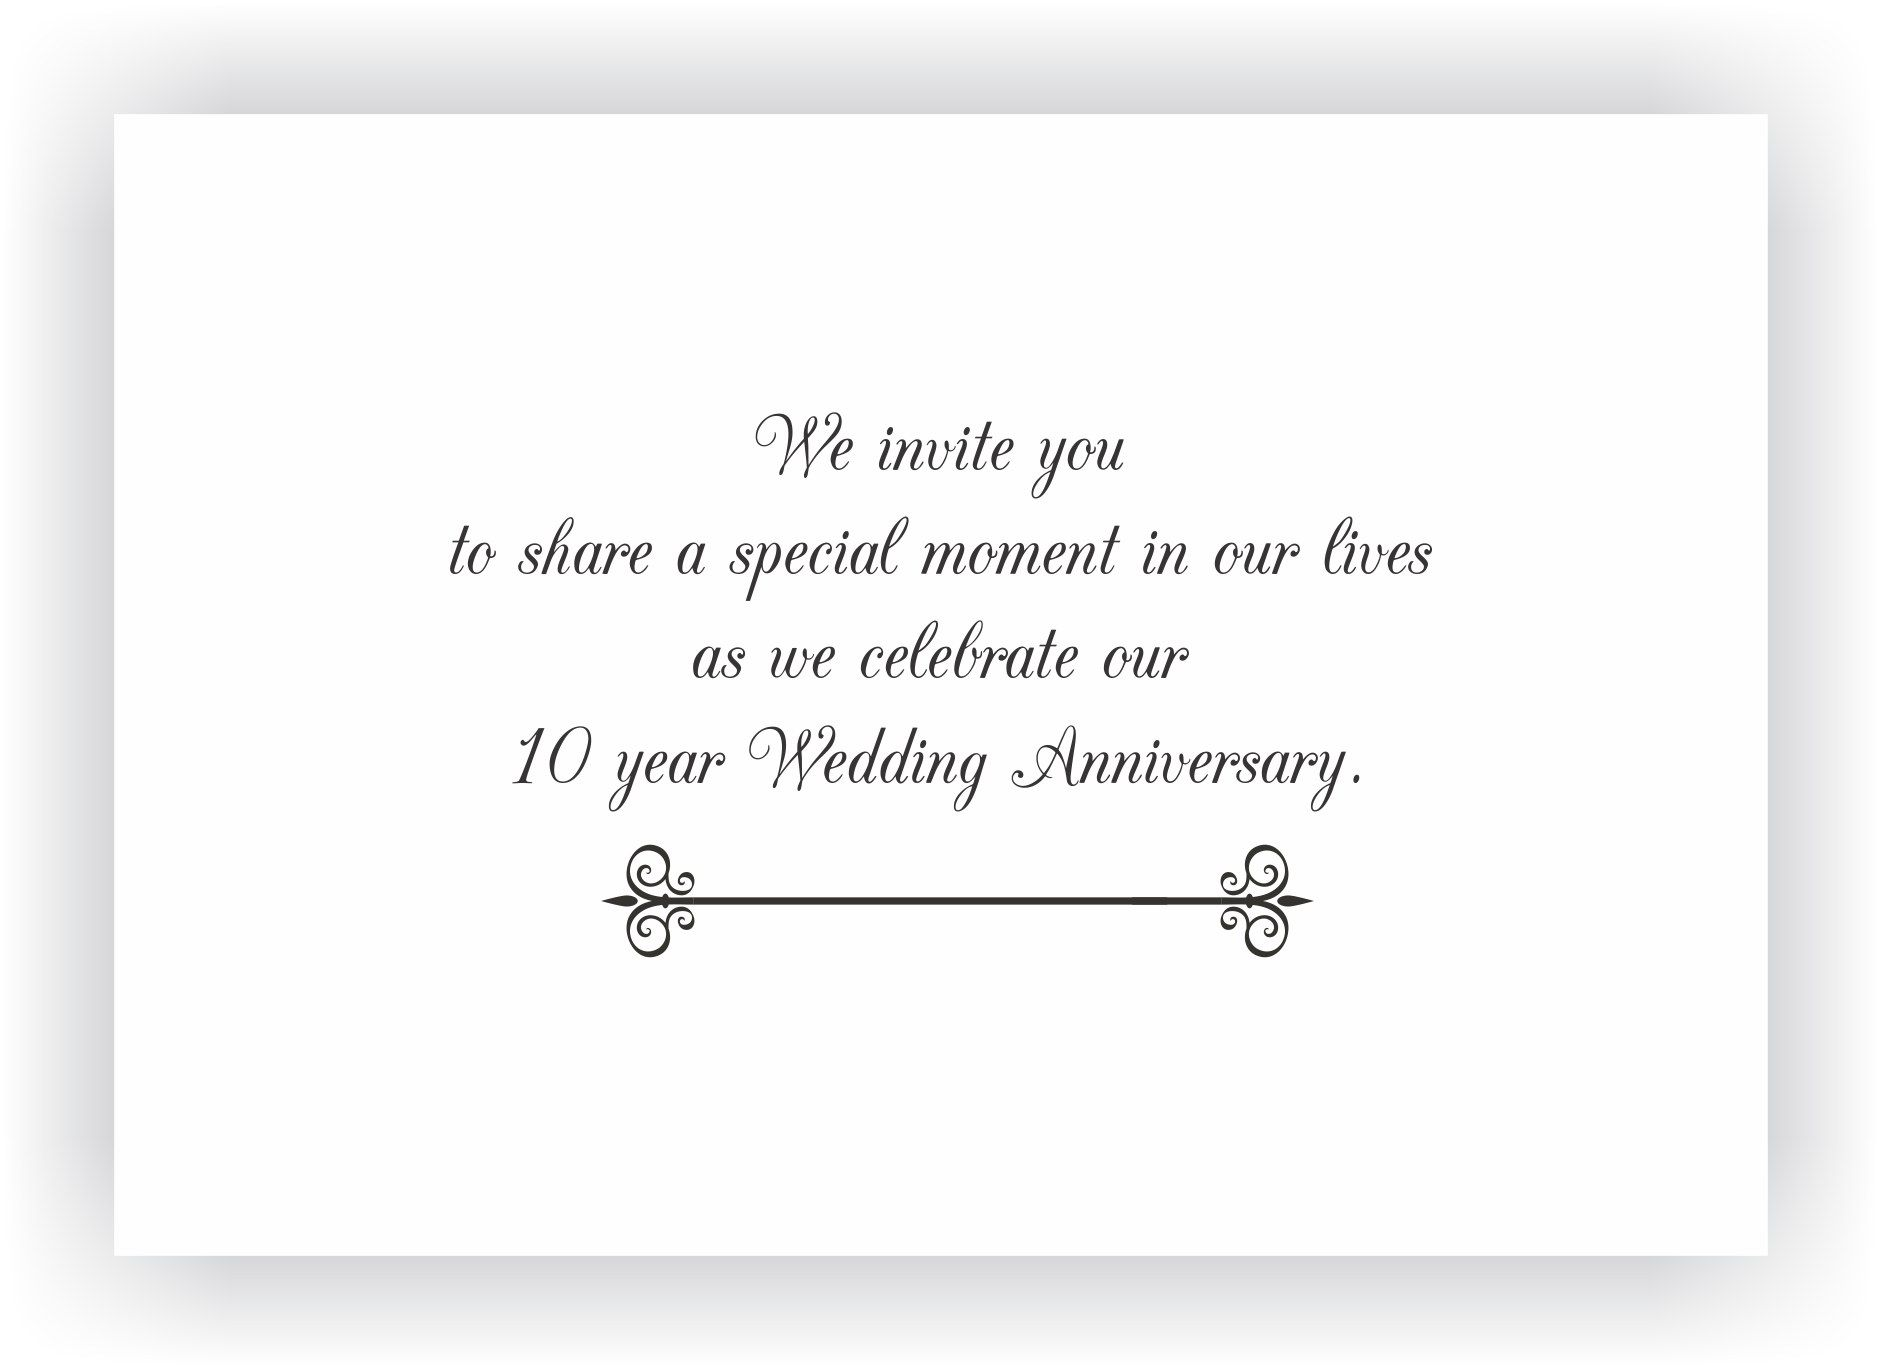 Marriage Anniversary Invitation Messages | Invitation of wedding ...